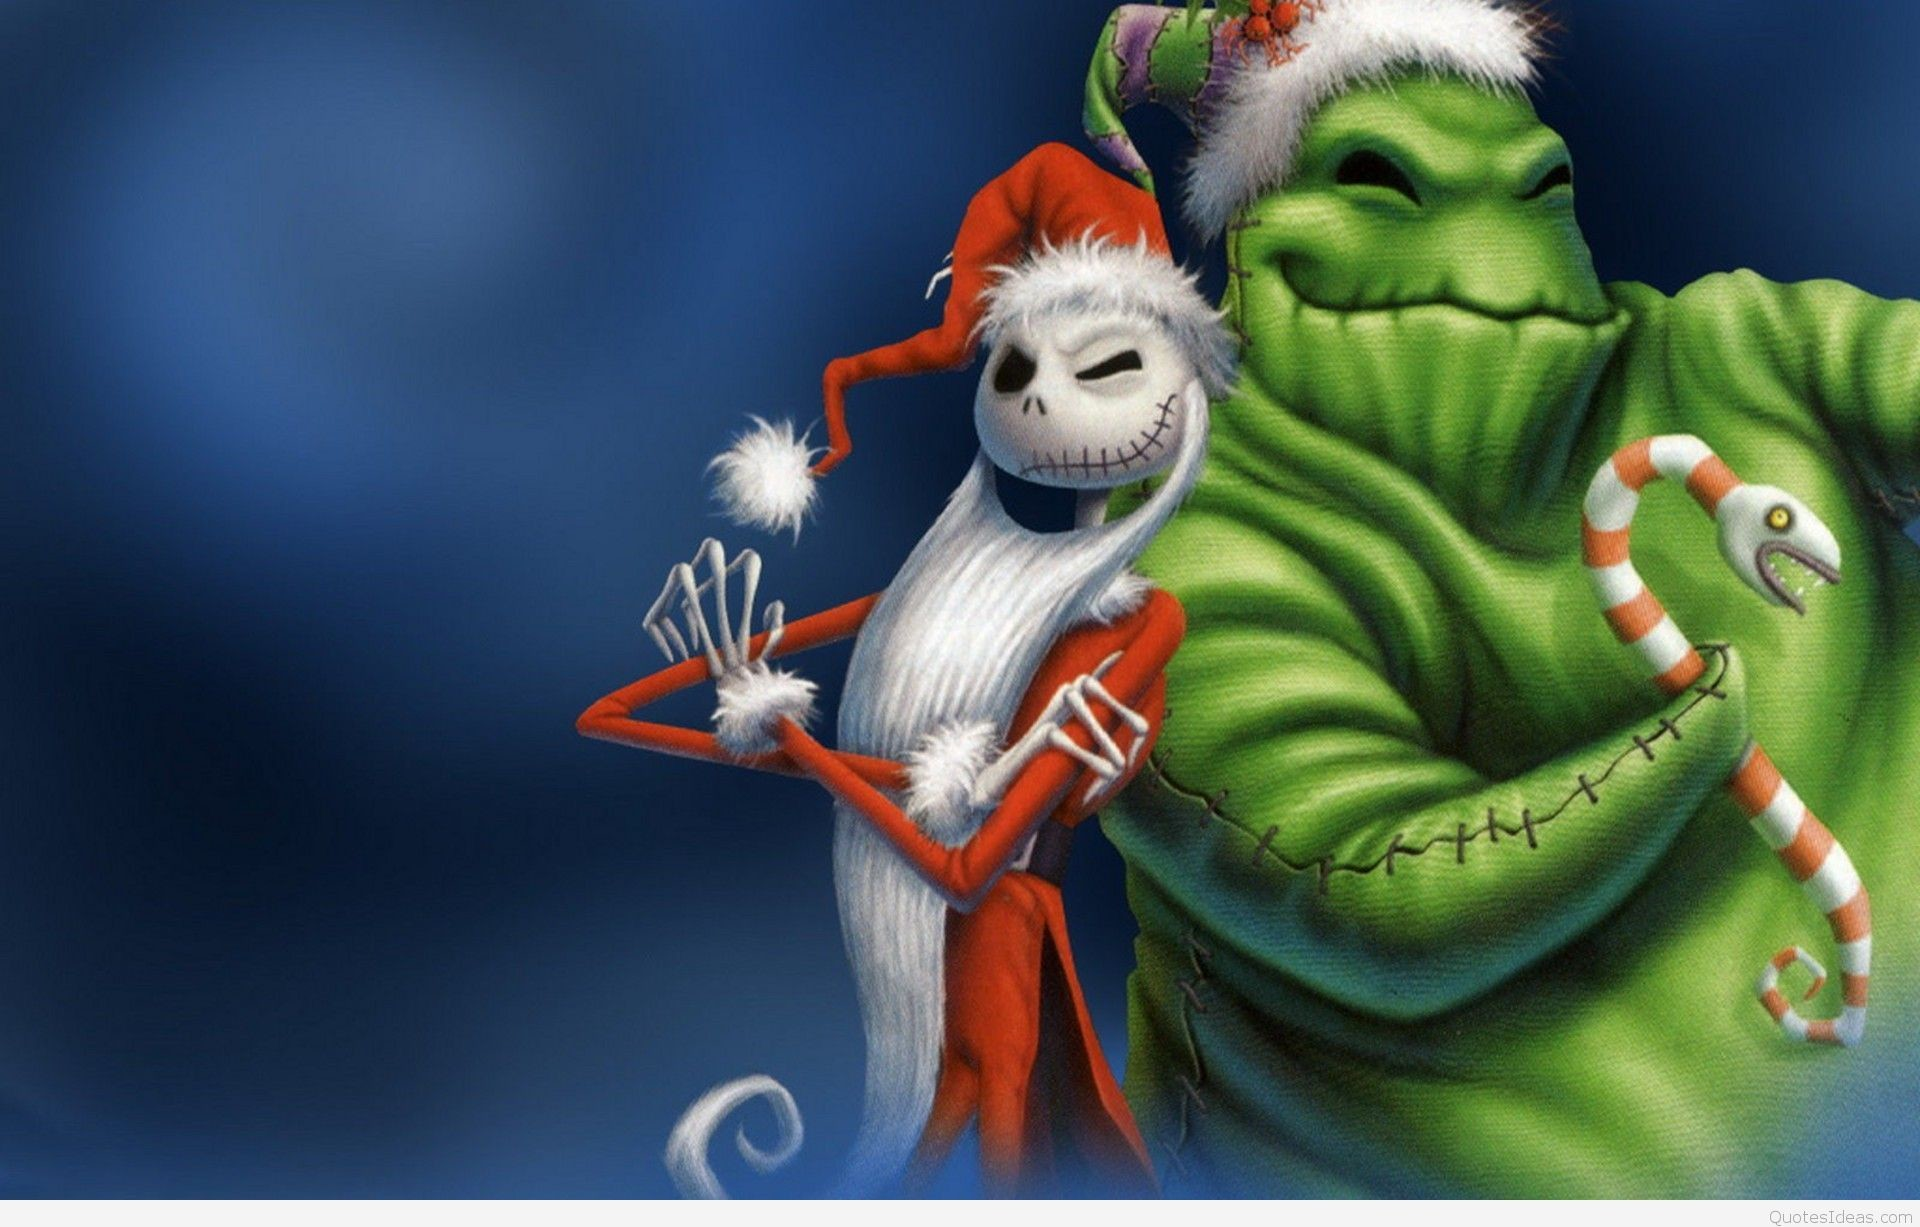 cute-abstract-funny-merry-christmas-wallpaper-backgrounds